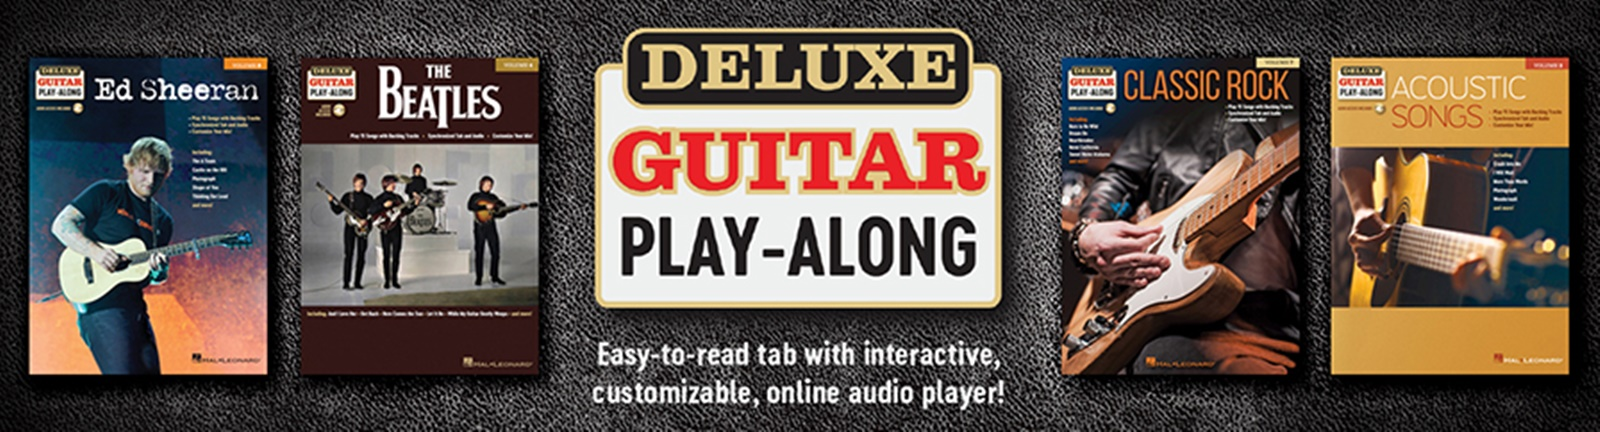 Deluxe Guitar Play-Along